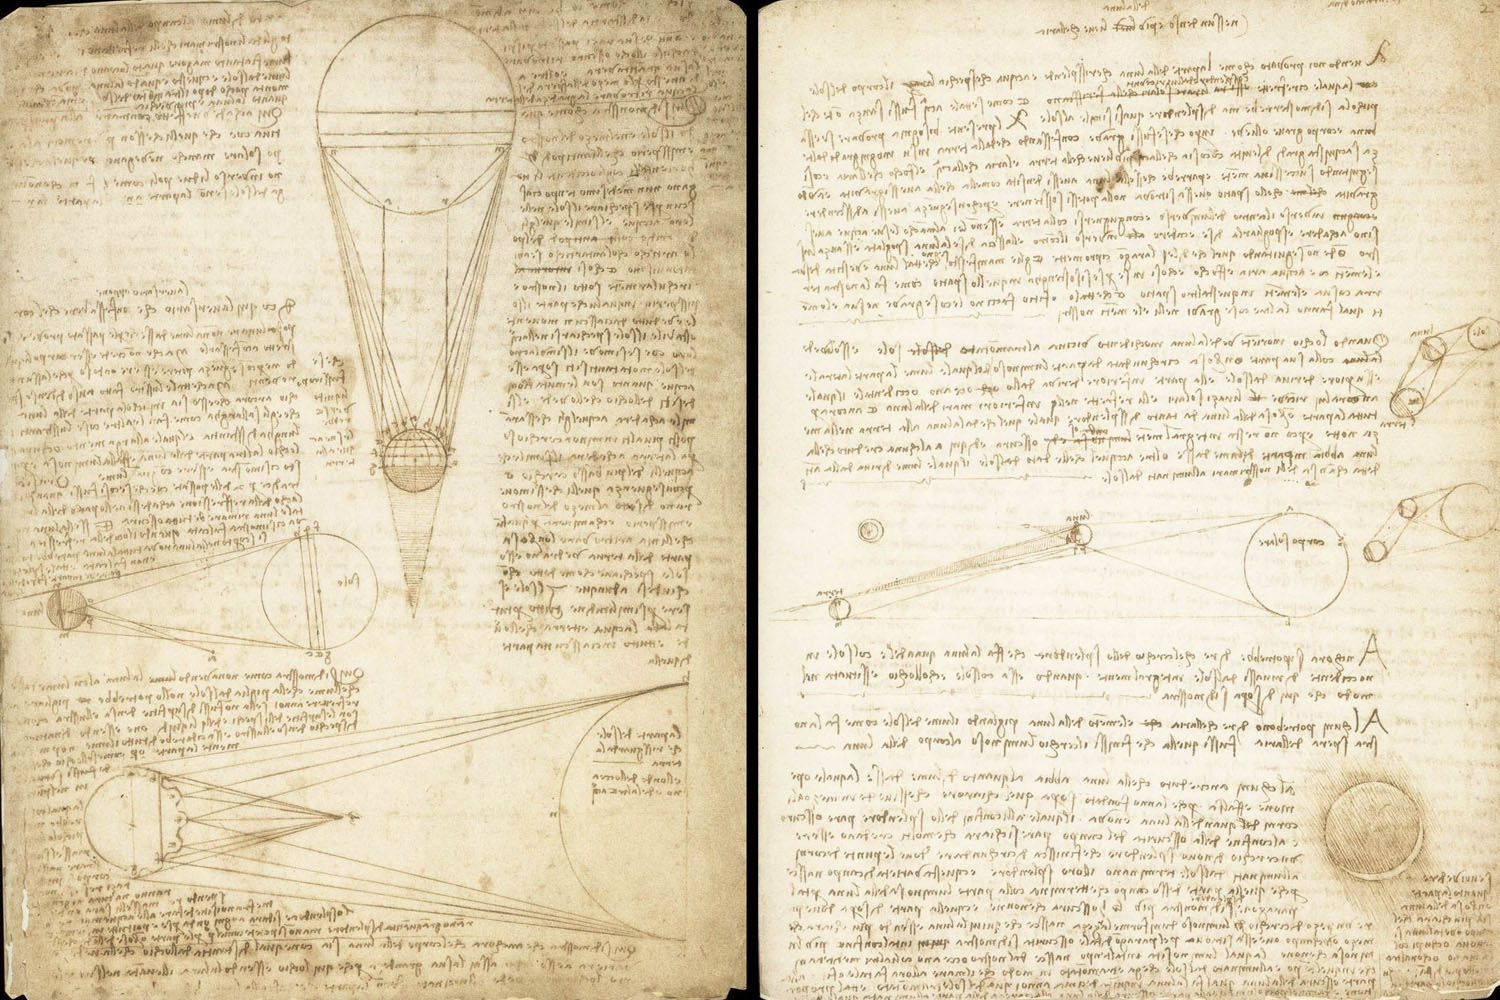 Leonardo da Vinci, Codex Leicester, 1r & 2r Courtesy Bill Gates/©bgC3